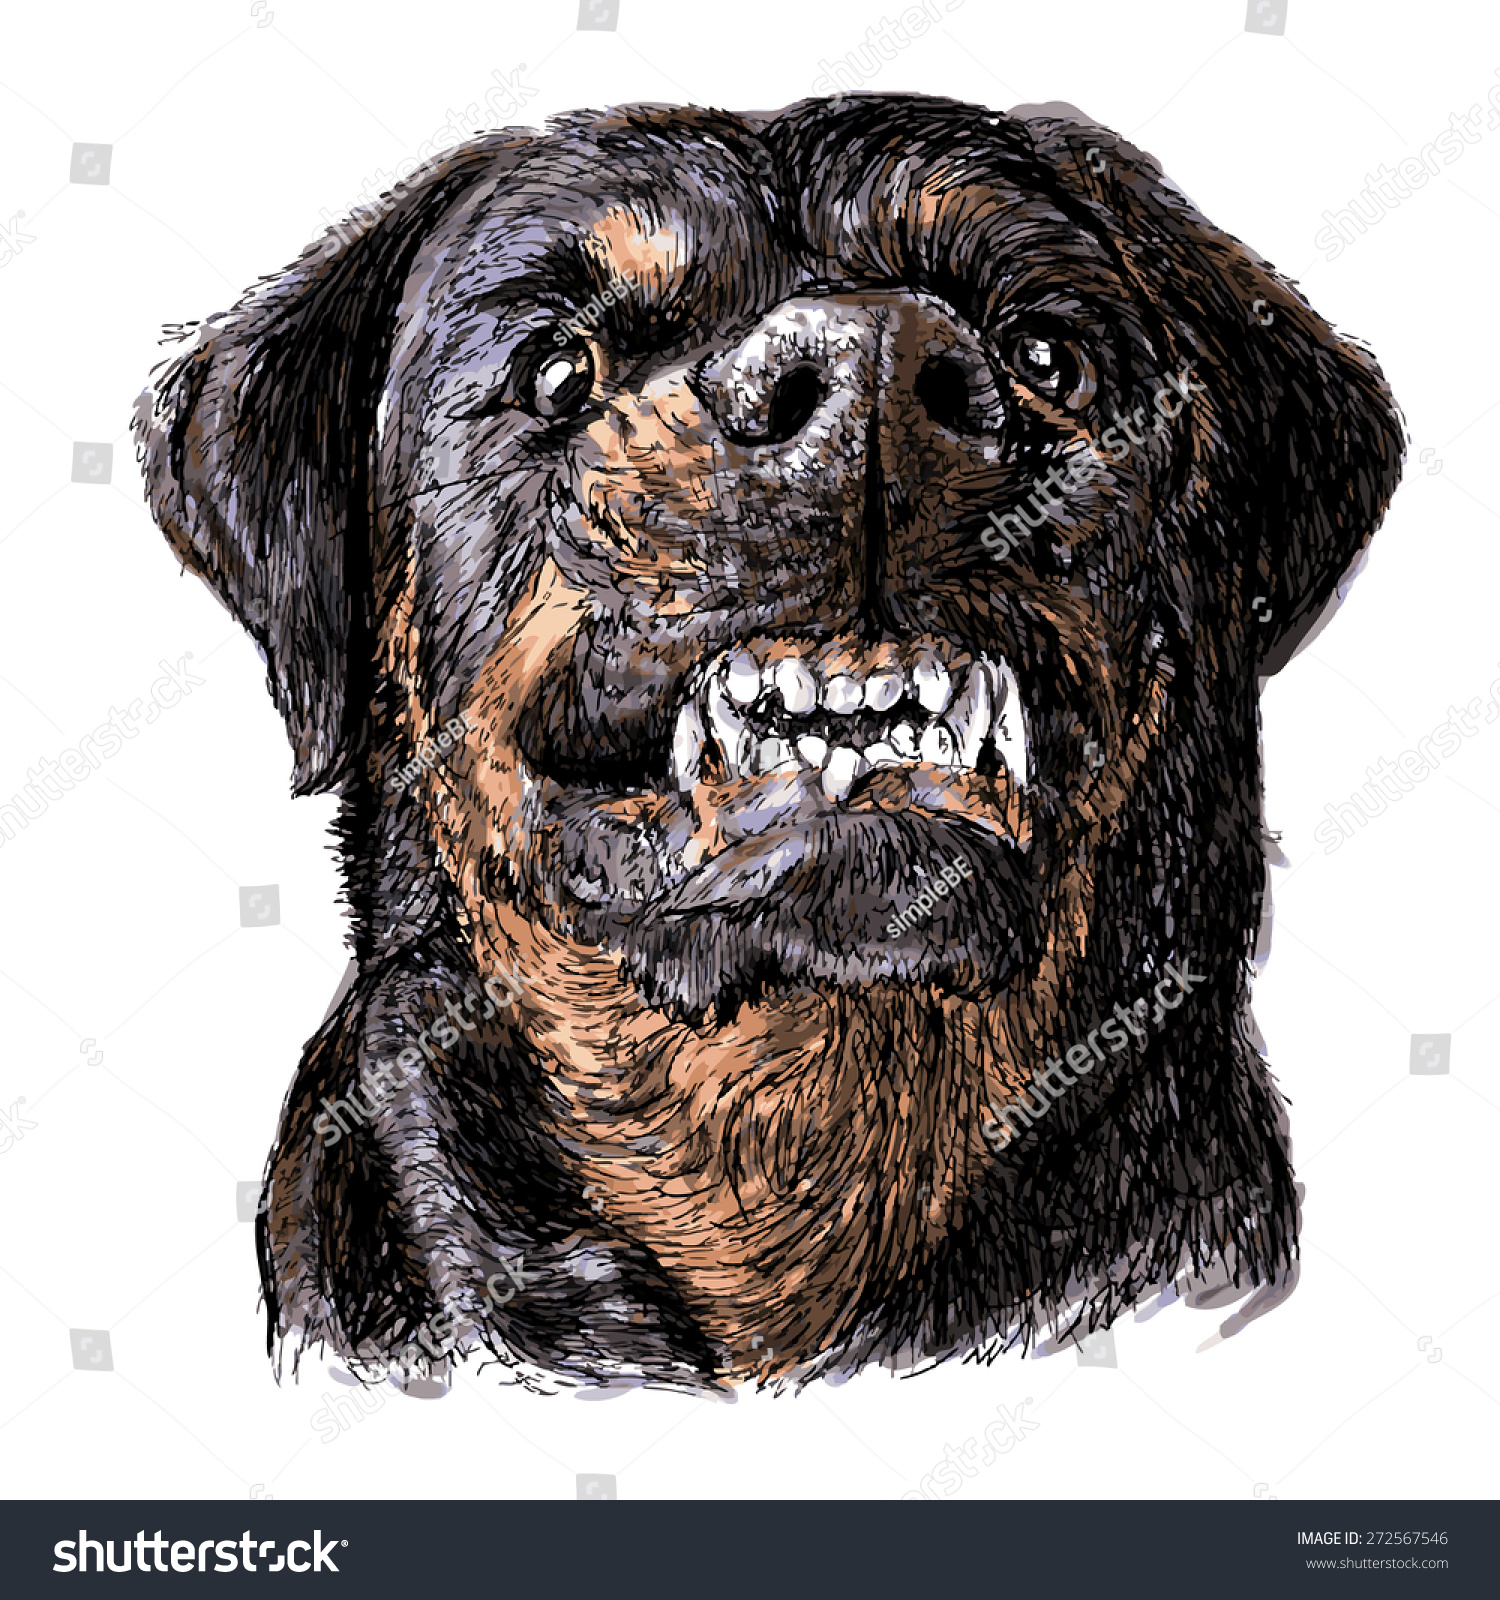 Angry rottweiler dog - photo#24